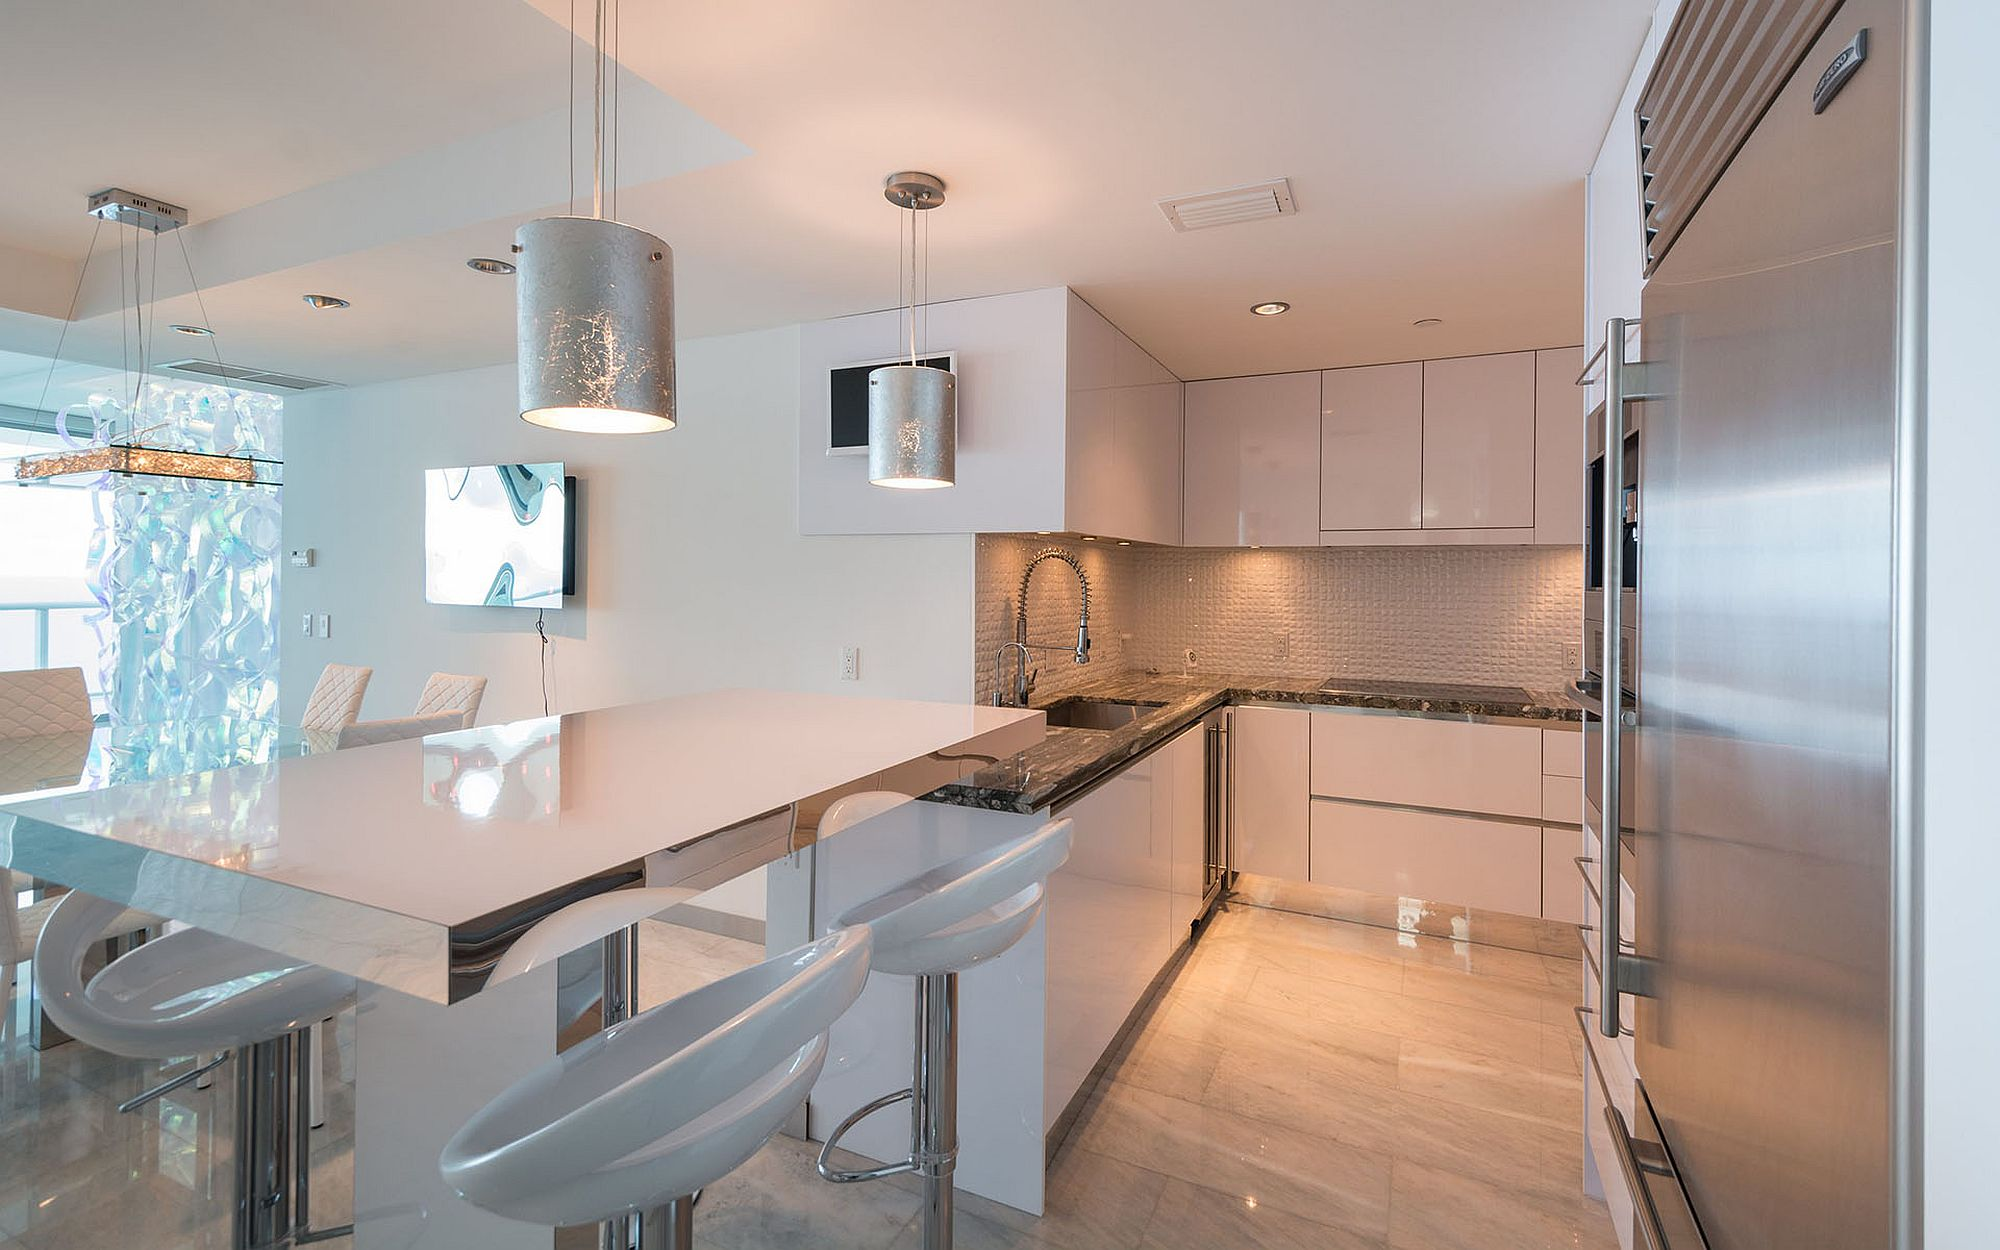 State-of-the-art smart kitchen at Jade Beach, Sunny Isles